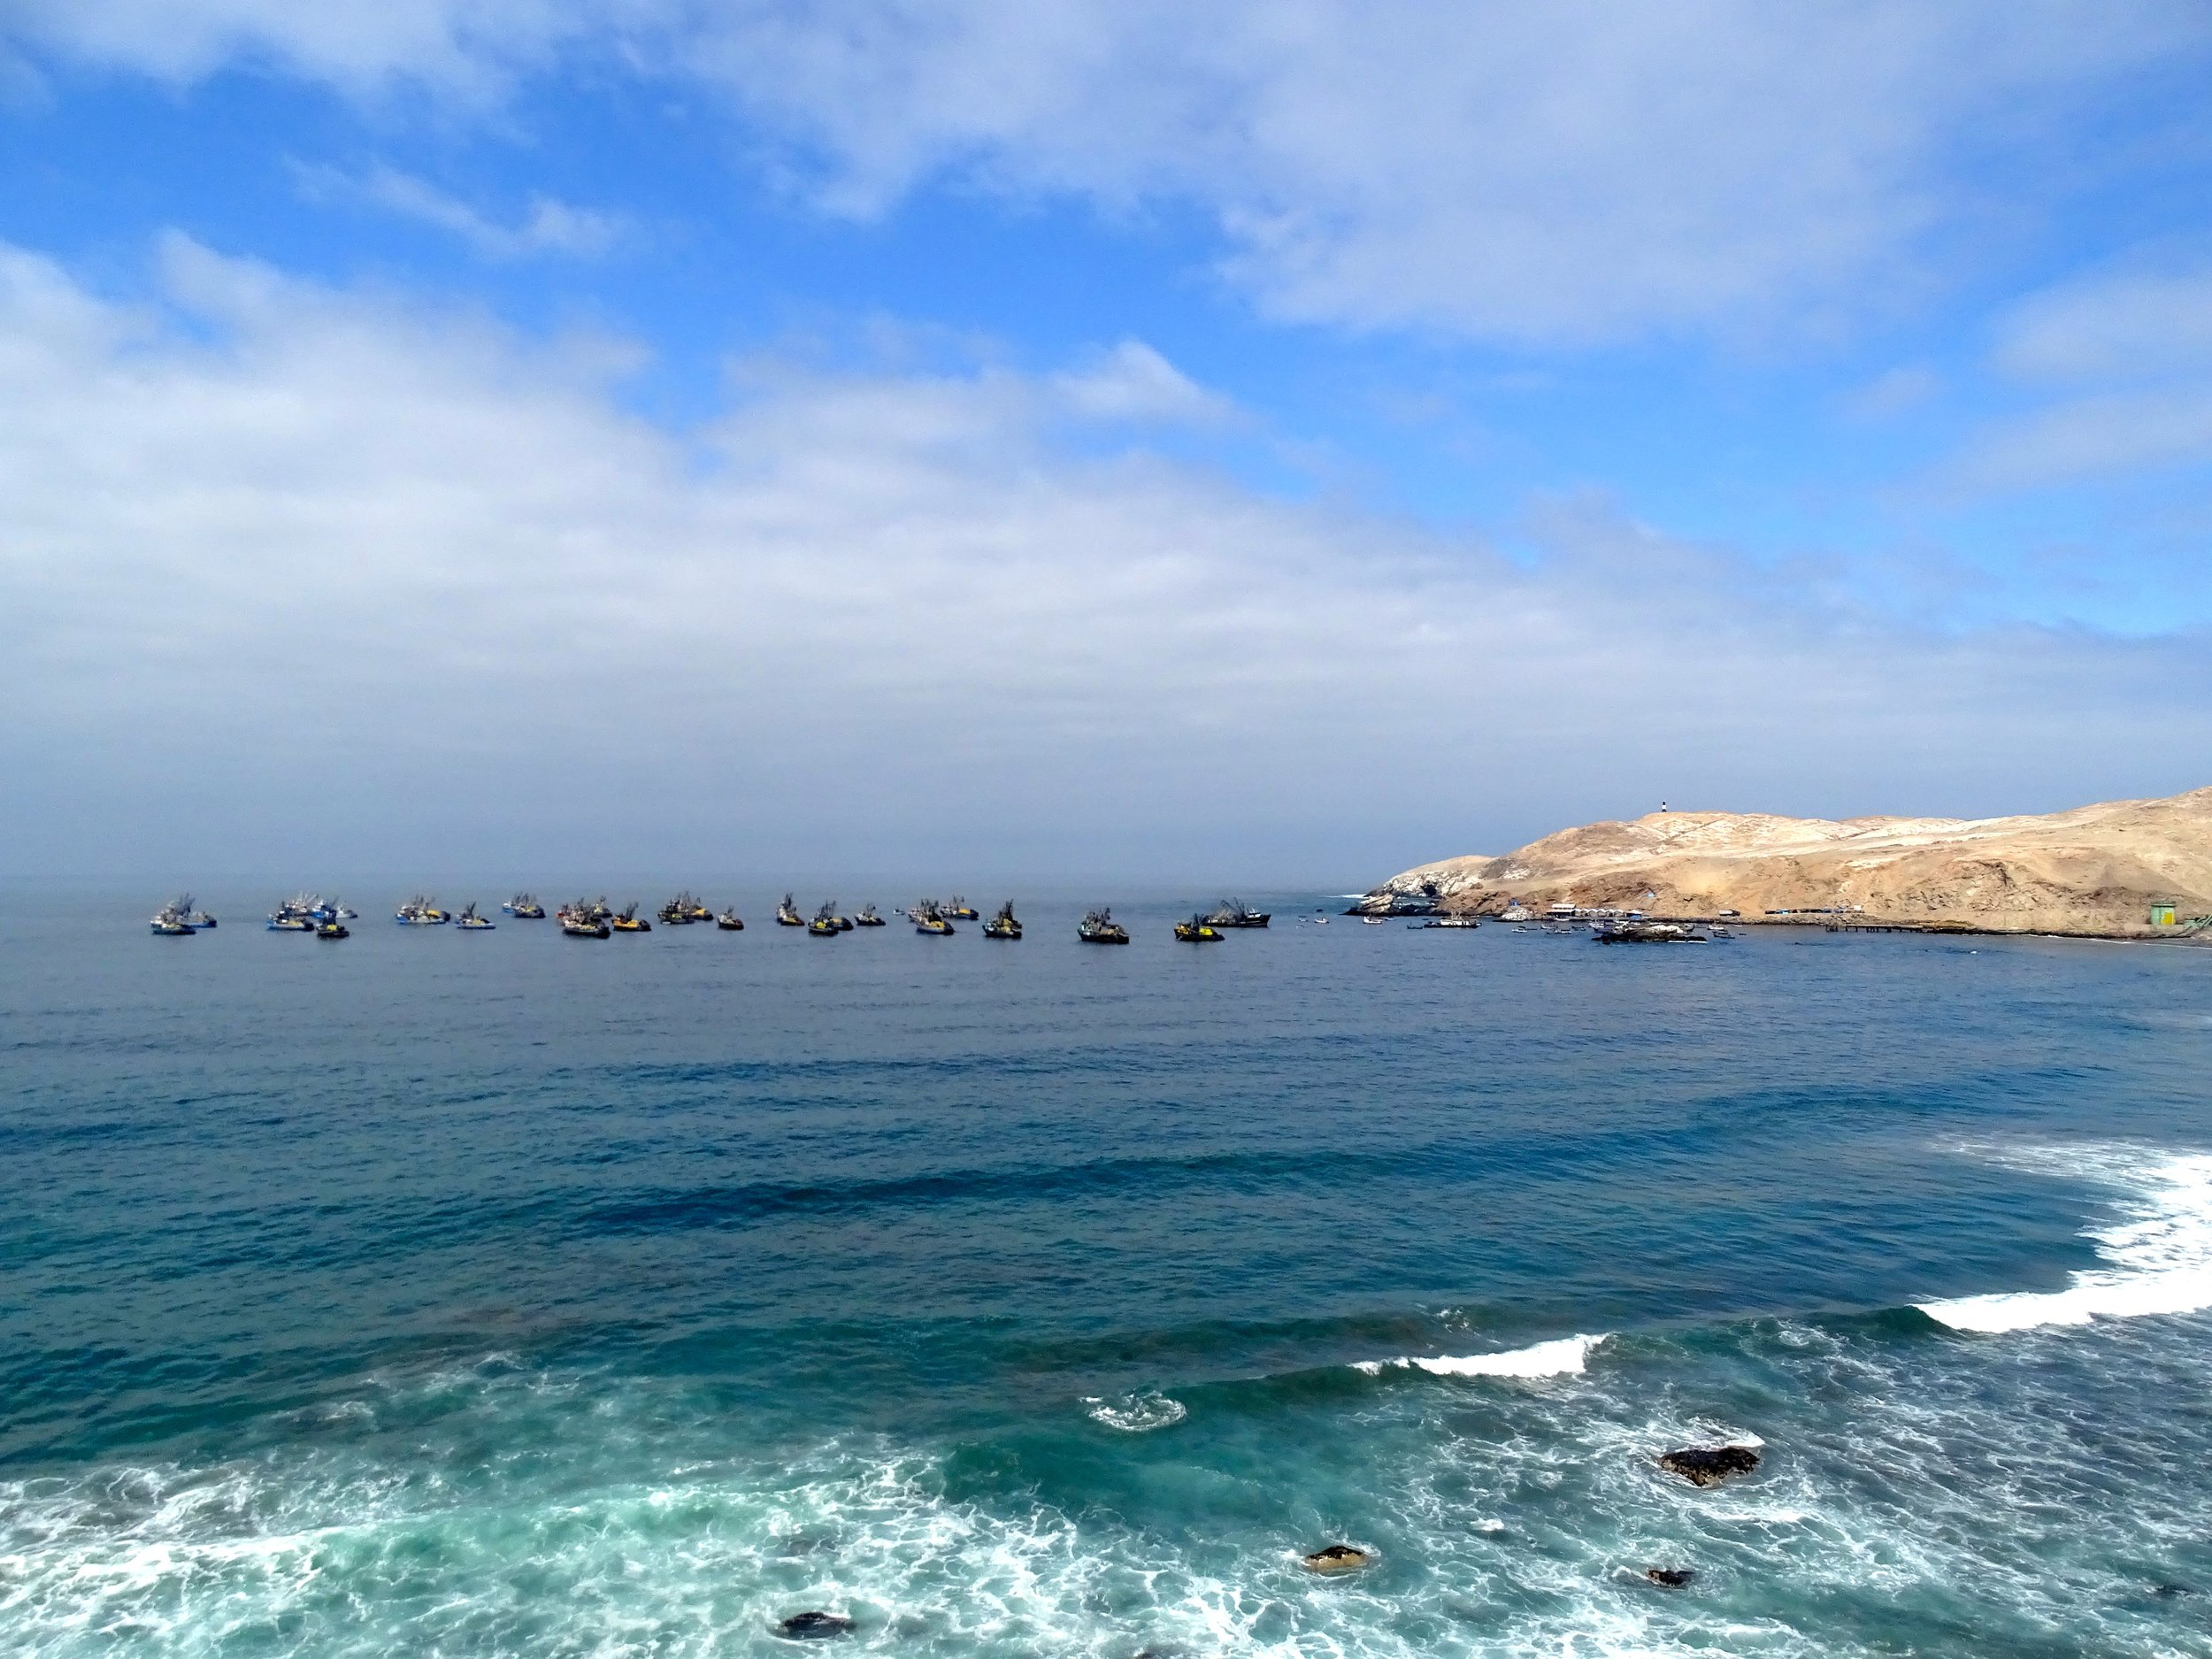 A Peruvian fishing port, lots of tuna boats.